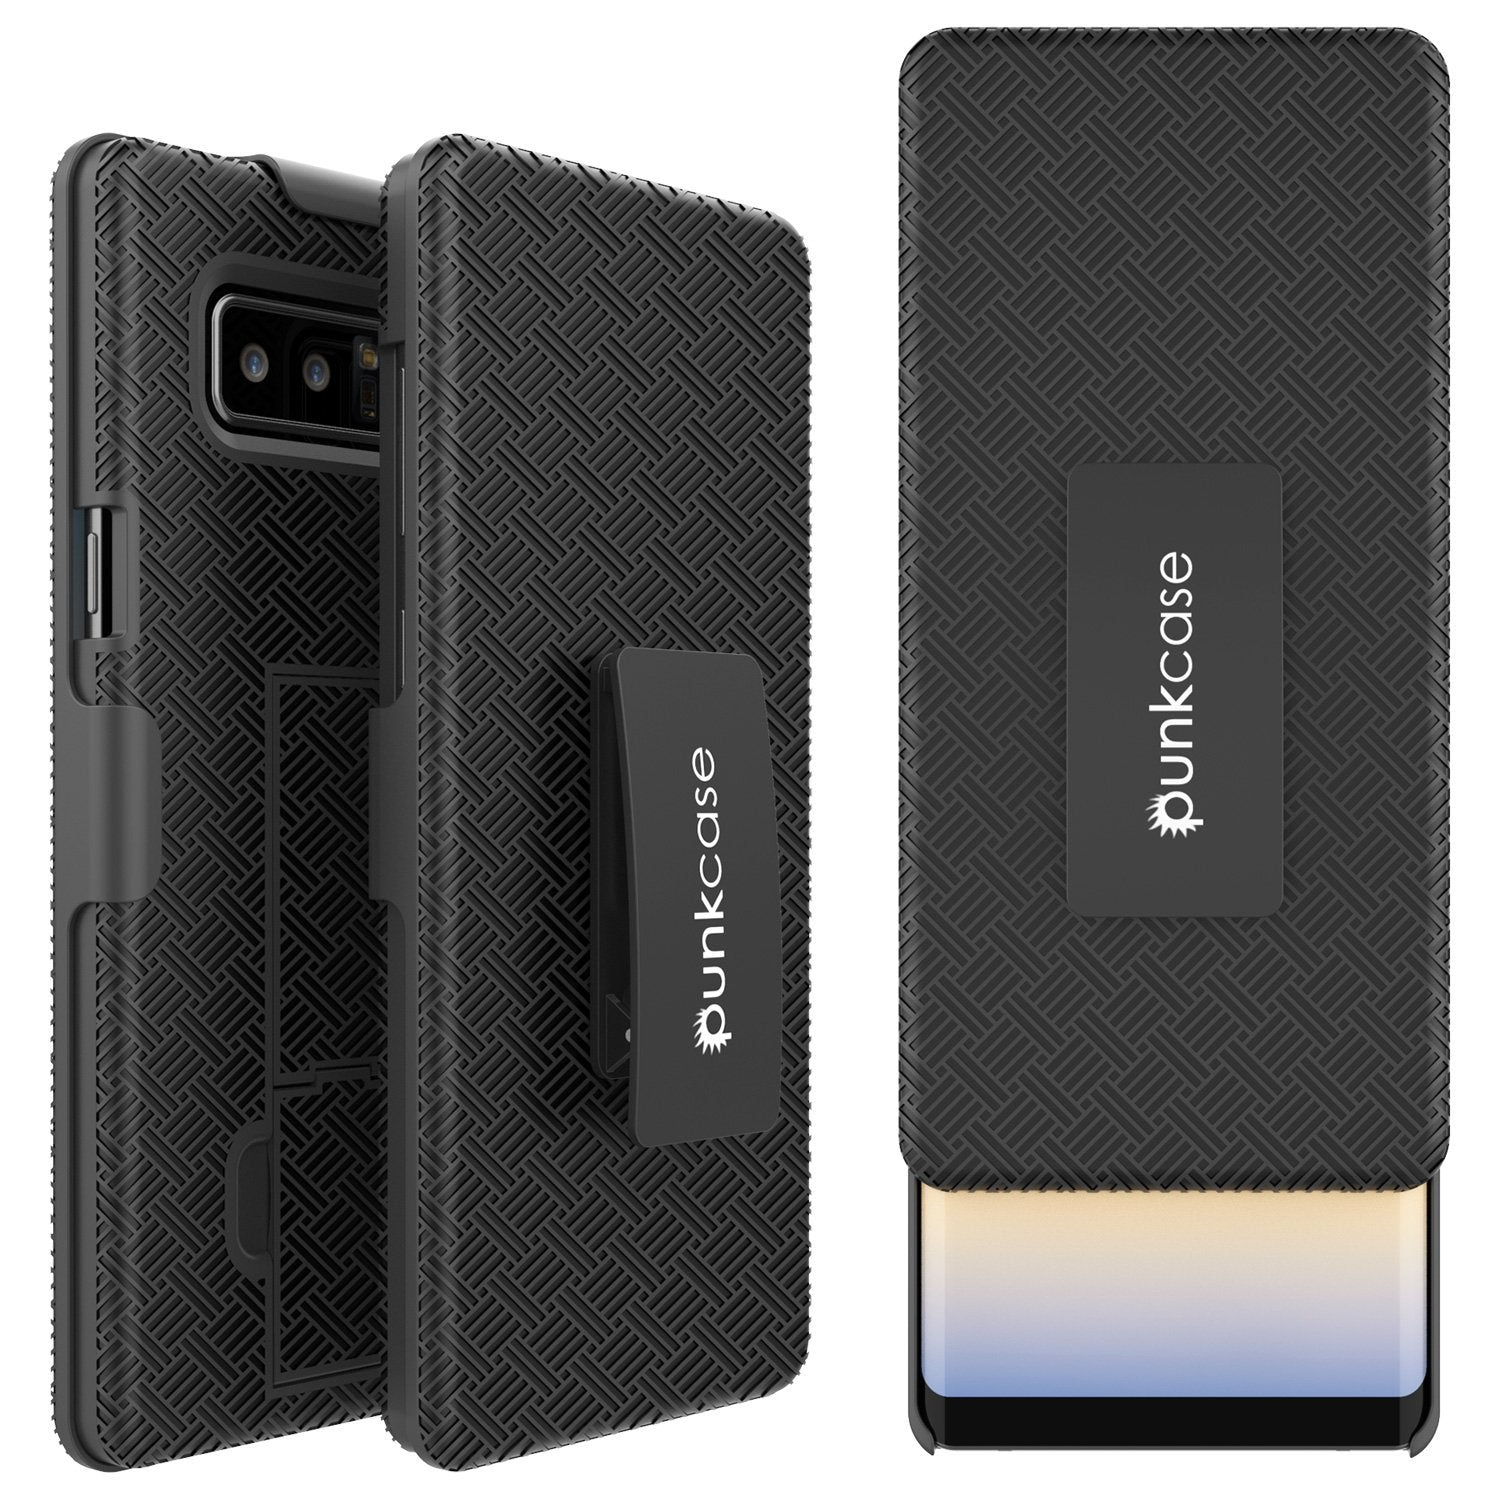 Galaxy Note 8 Holster Belt Clip W/ Ultra Screen Protector Case [Black]